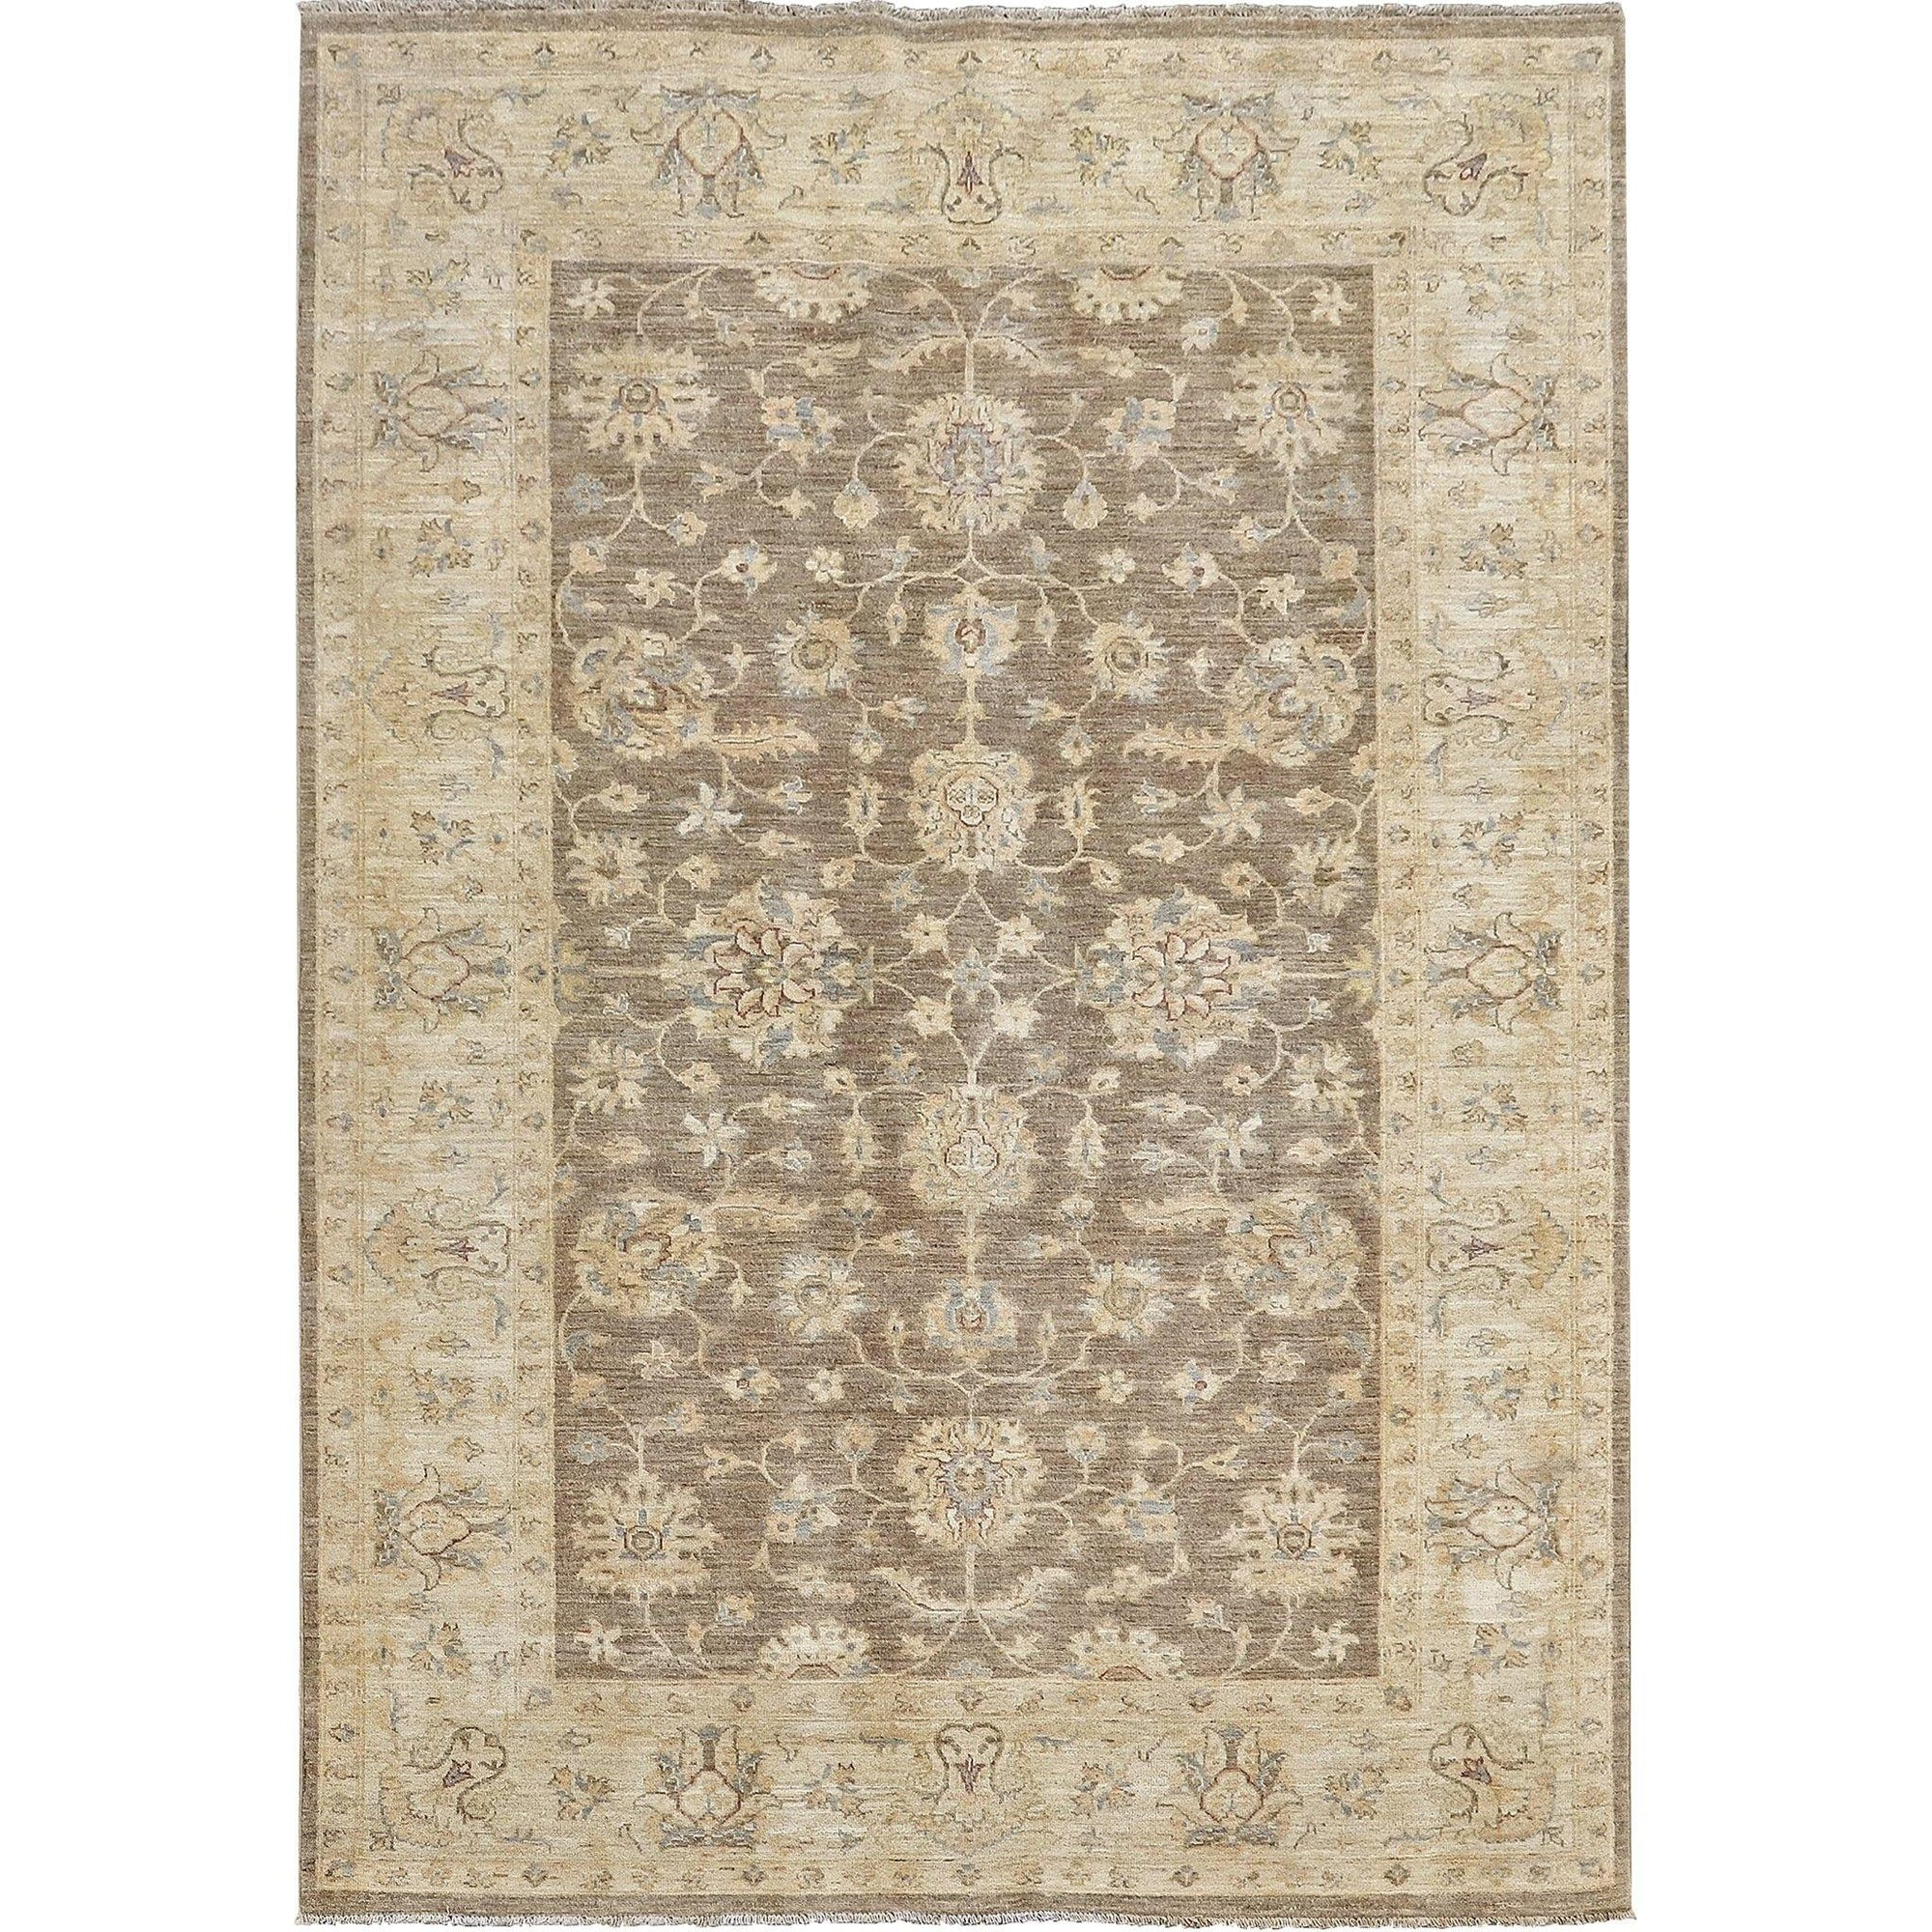 Fine Hand-knotted Chobi Wool Rug 186cm x 267cm Persian-Rug | House-of-Haghi | NewMarket | Auckland | NZ | Handmade Persian Rugs | Hand Knotted Persian Rugs